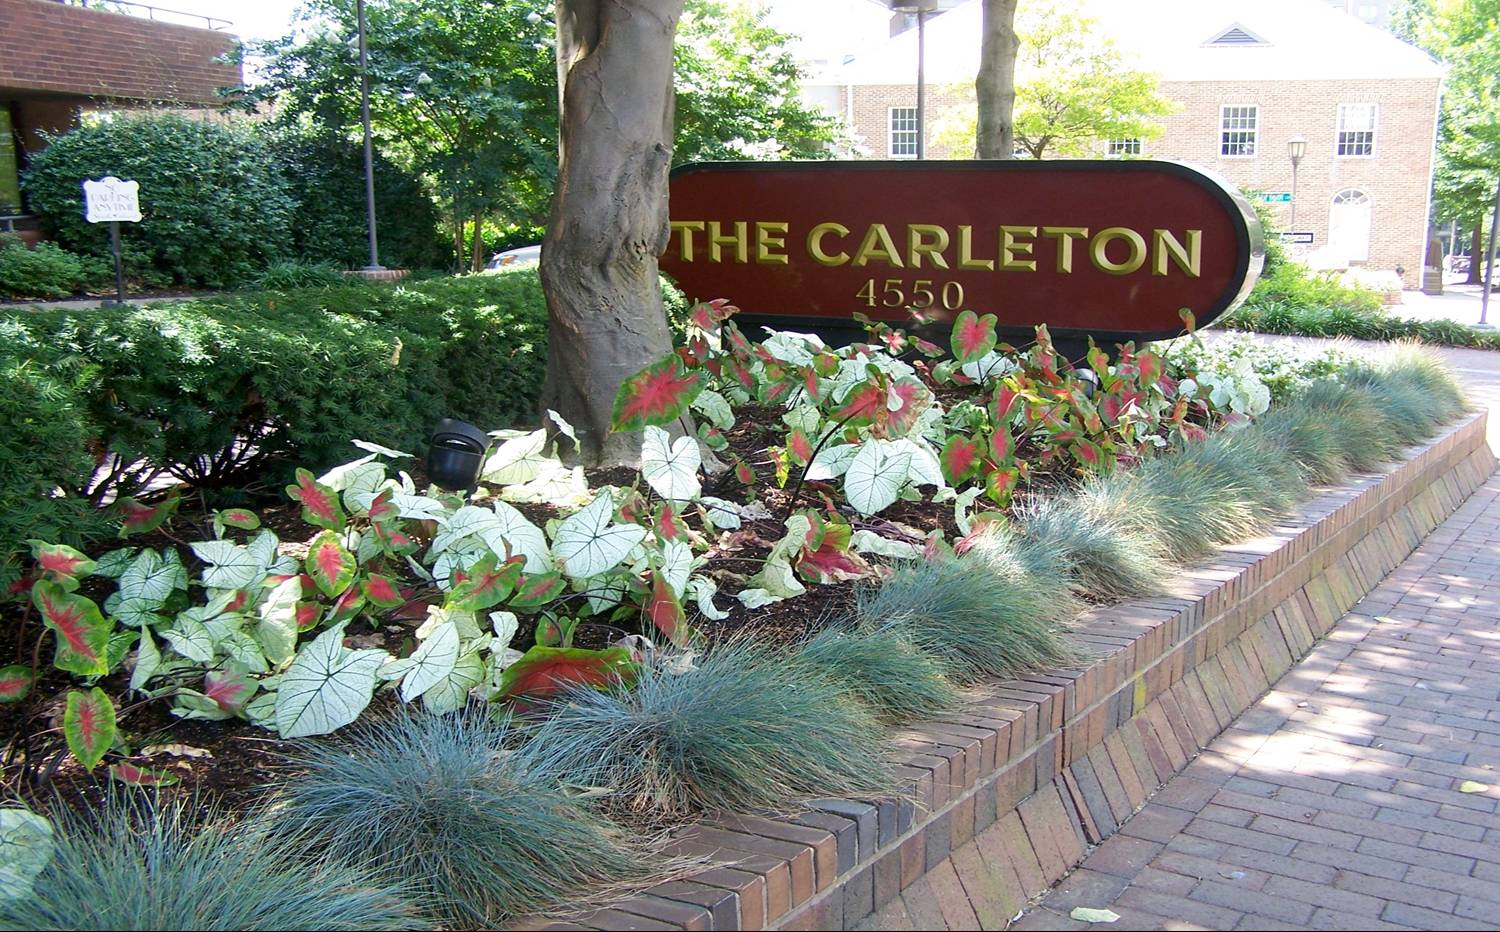 The Carleton, Ruppert Nurseries